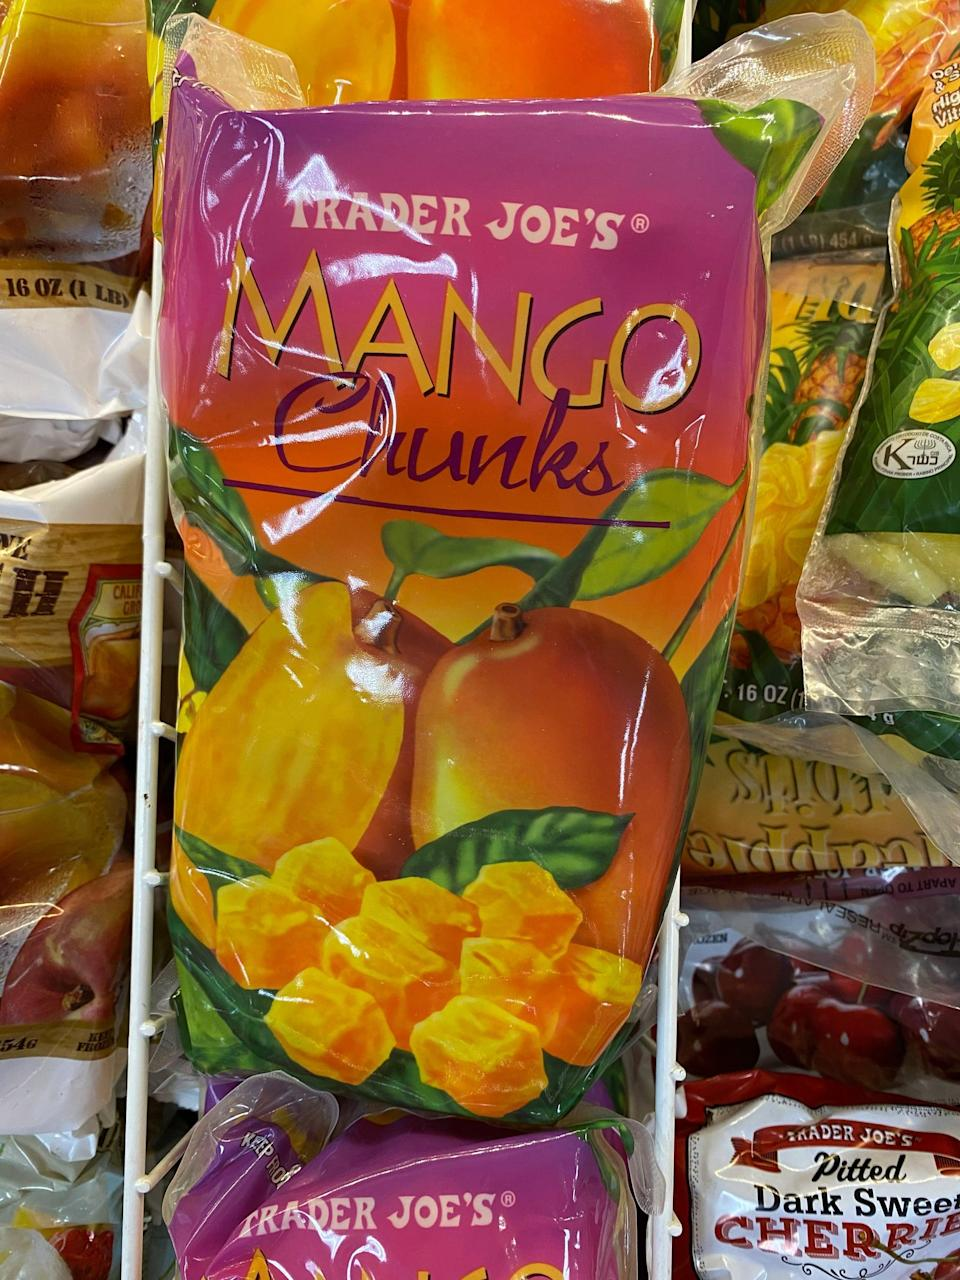 """<p>I buy many of Trader Joe's frozen fruits such as blueberries, strawberries, and strawberries to add to oatmeal and homemade muffins, but this frozen mango is my fave. I use it to make <a href=""""https://www.popsugar.com/fitness/Vegan-Mango-Ice-Cream-30689665"""" class=""""link rapid-noclick-resp"""" rel=""""nofollow noopener"""" target=""""_blank"""" data-ylk=""""slk:frozen fruit &quot;nice cream,&quot;"""">frozen fruit """"nice cream,""""</a> and it's especially delicious and creamy when I add frozen banana and frozen cherries. It's just fruit, so it's a healthier, added-sugar-free alternative to ice cream.</p>"""